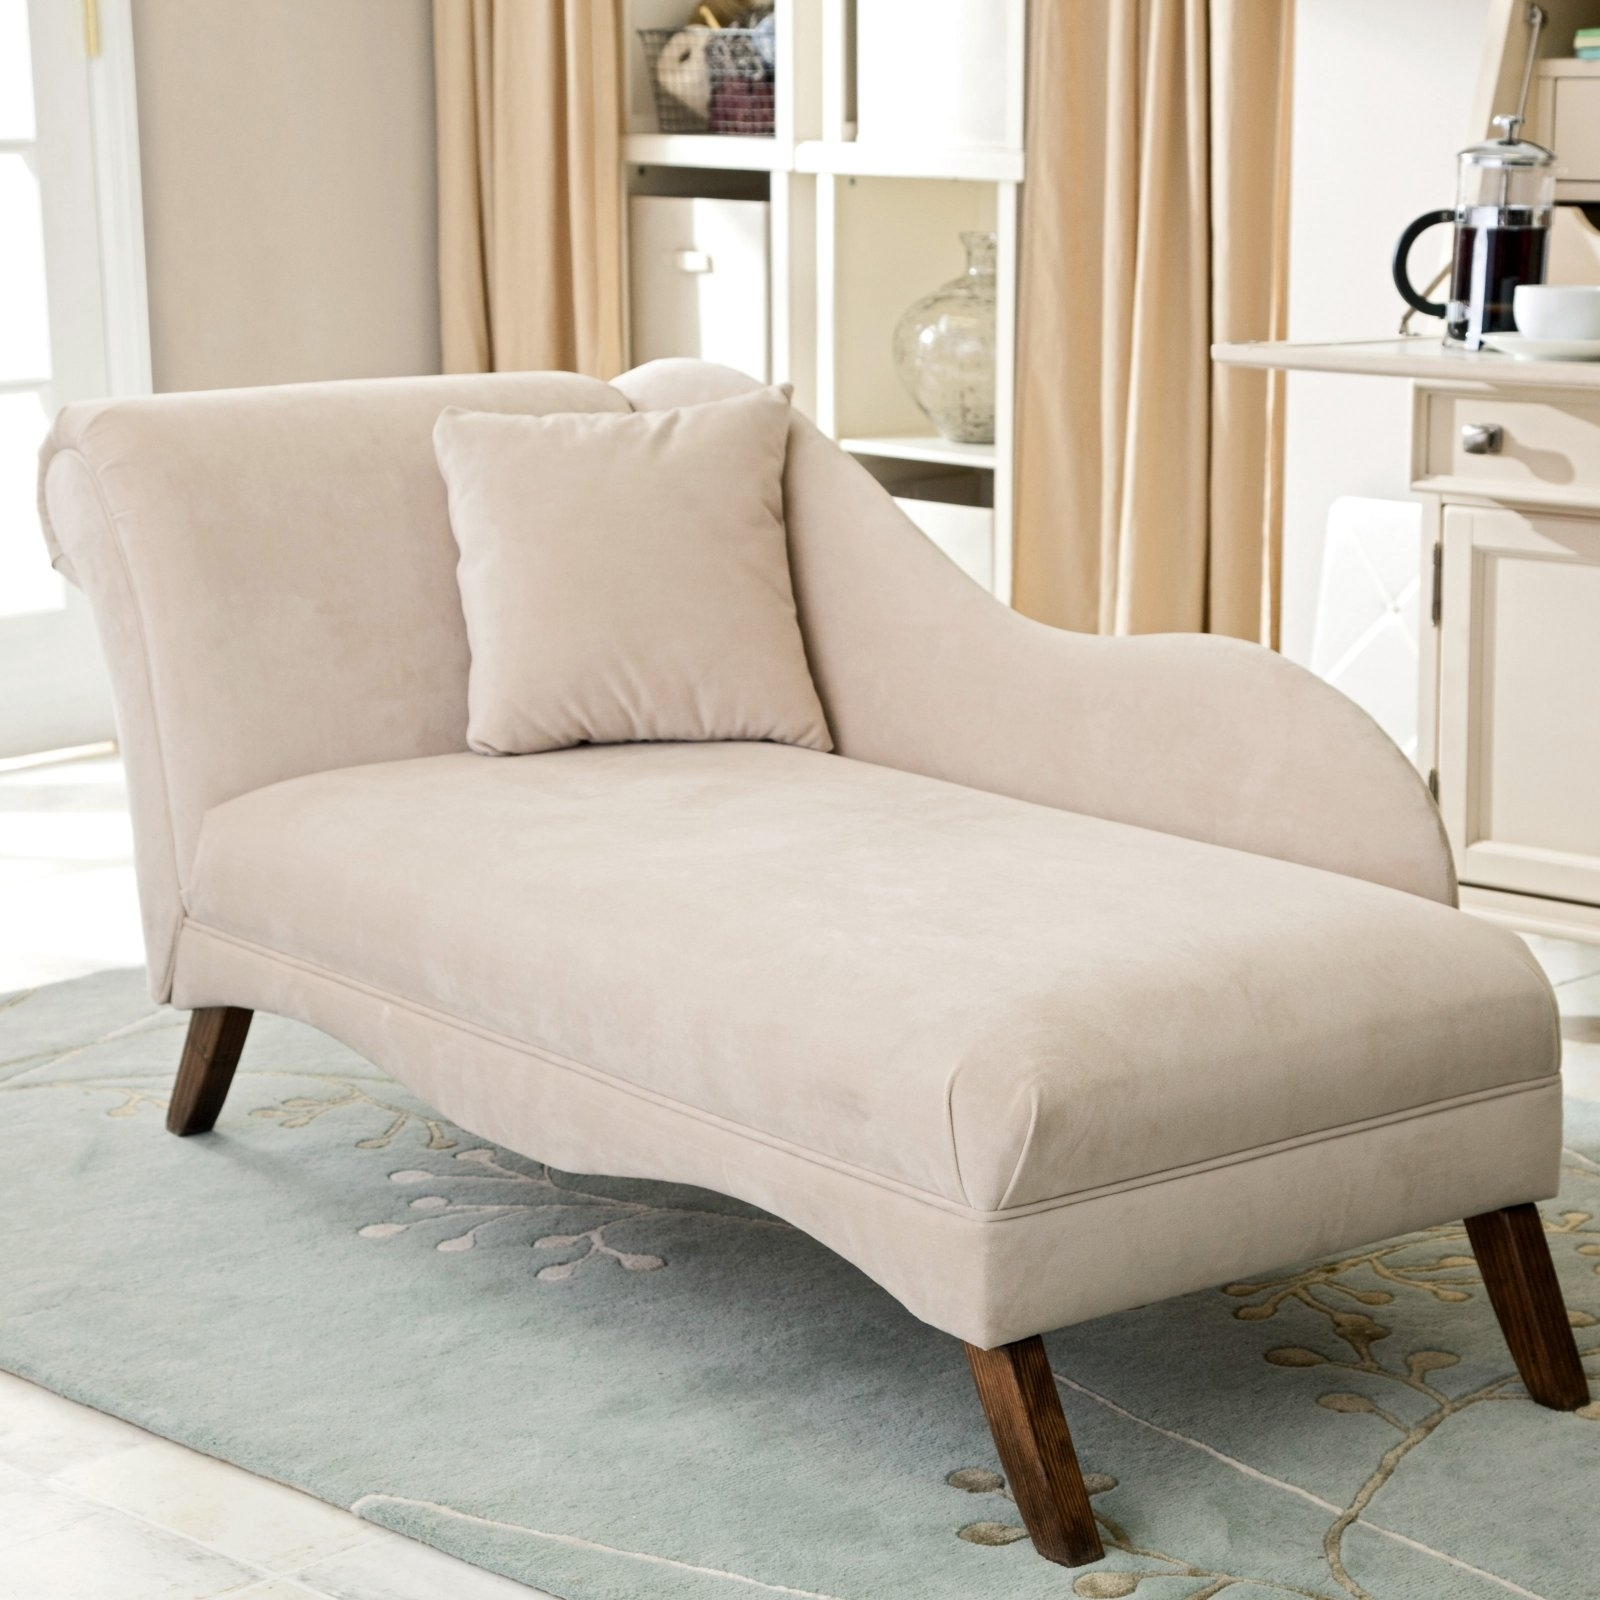 Sofa : Fabulous Chaise Lounges For Bedrooms Folding Lounge Chair With Bedroom Sofas (View 7 of 10)